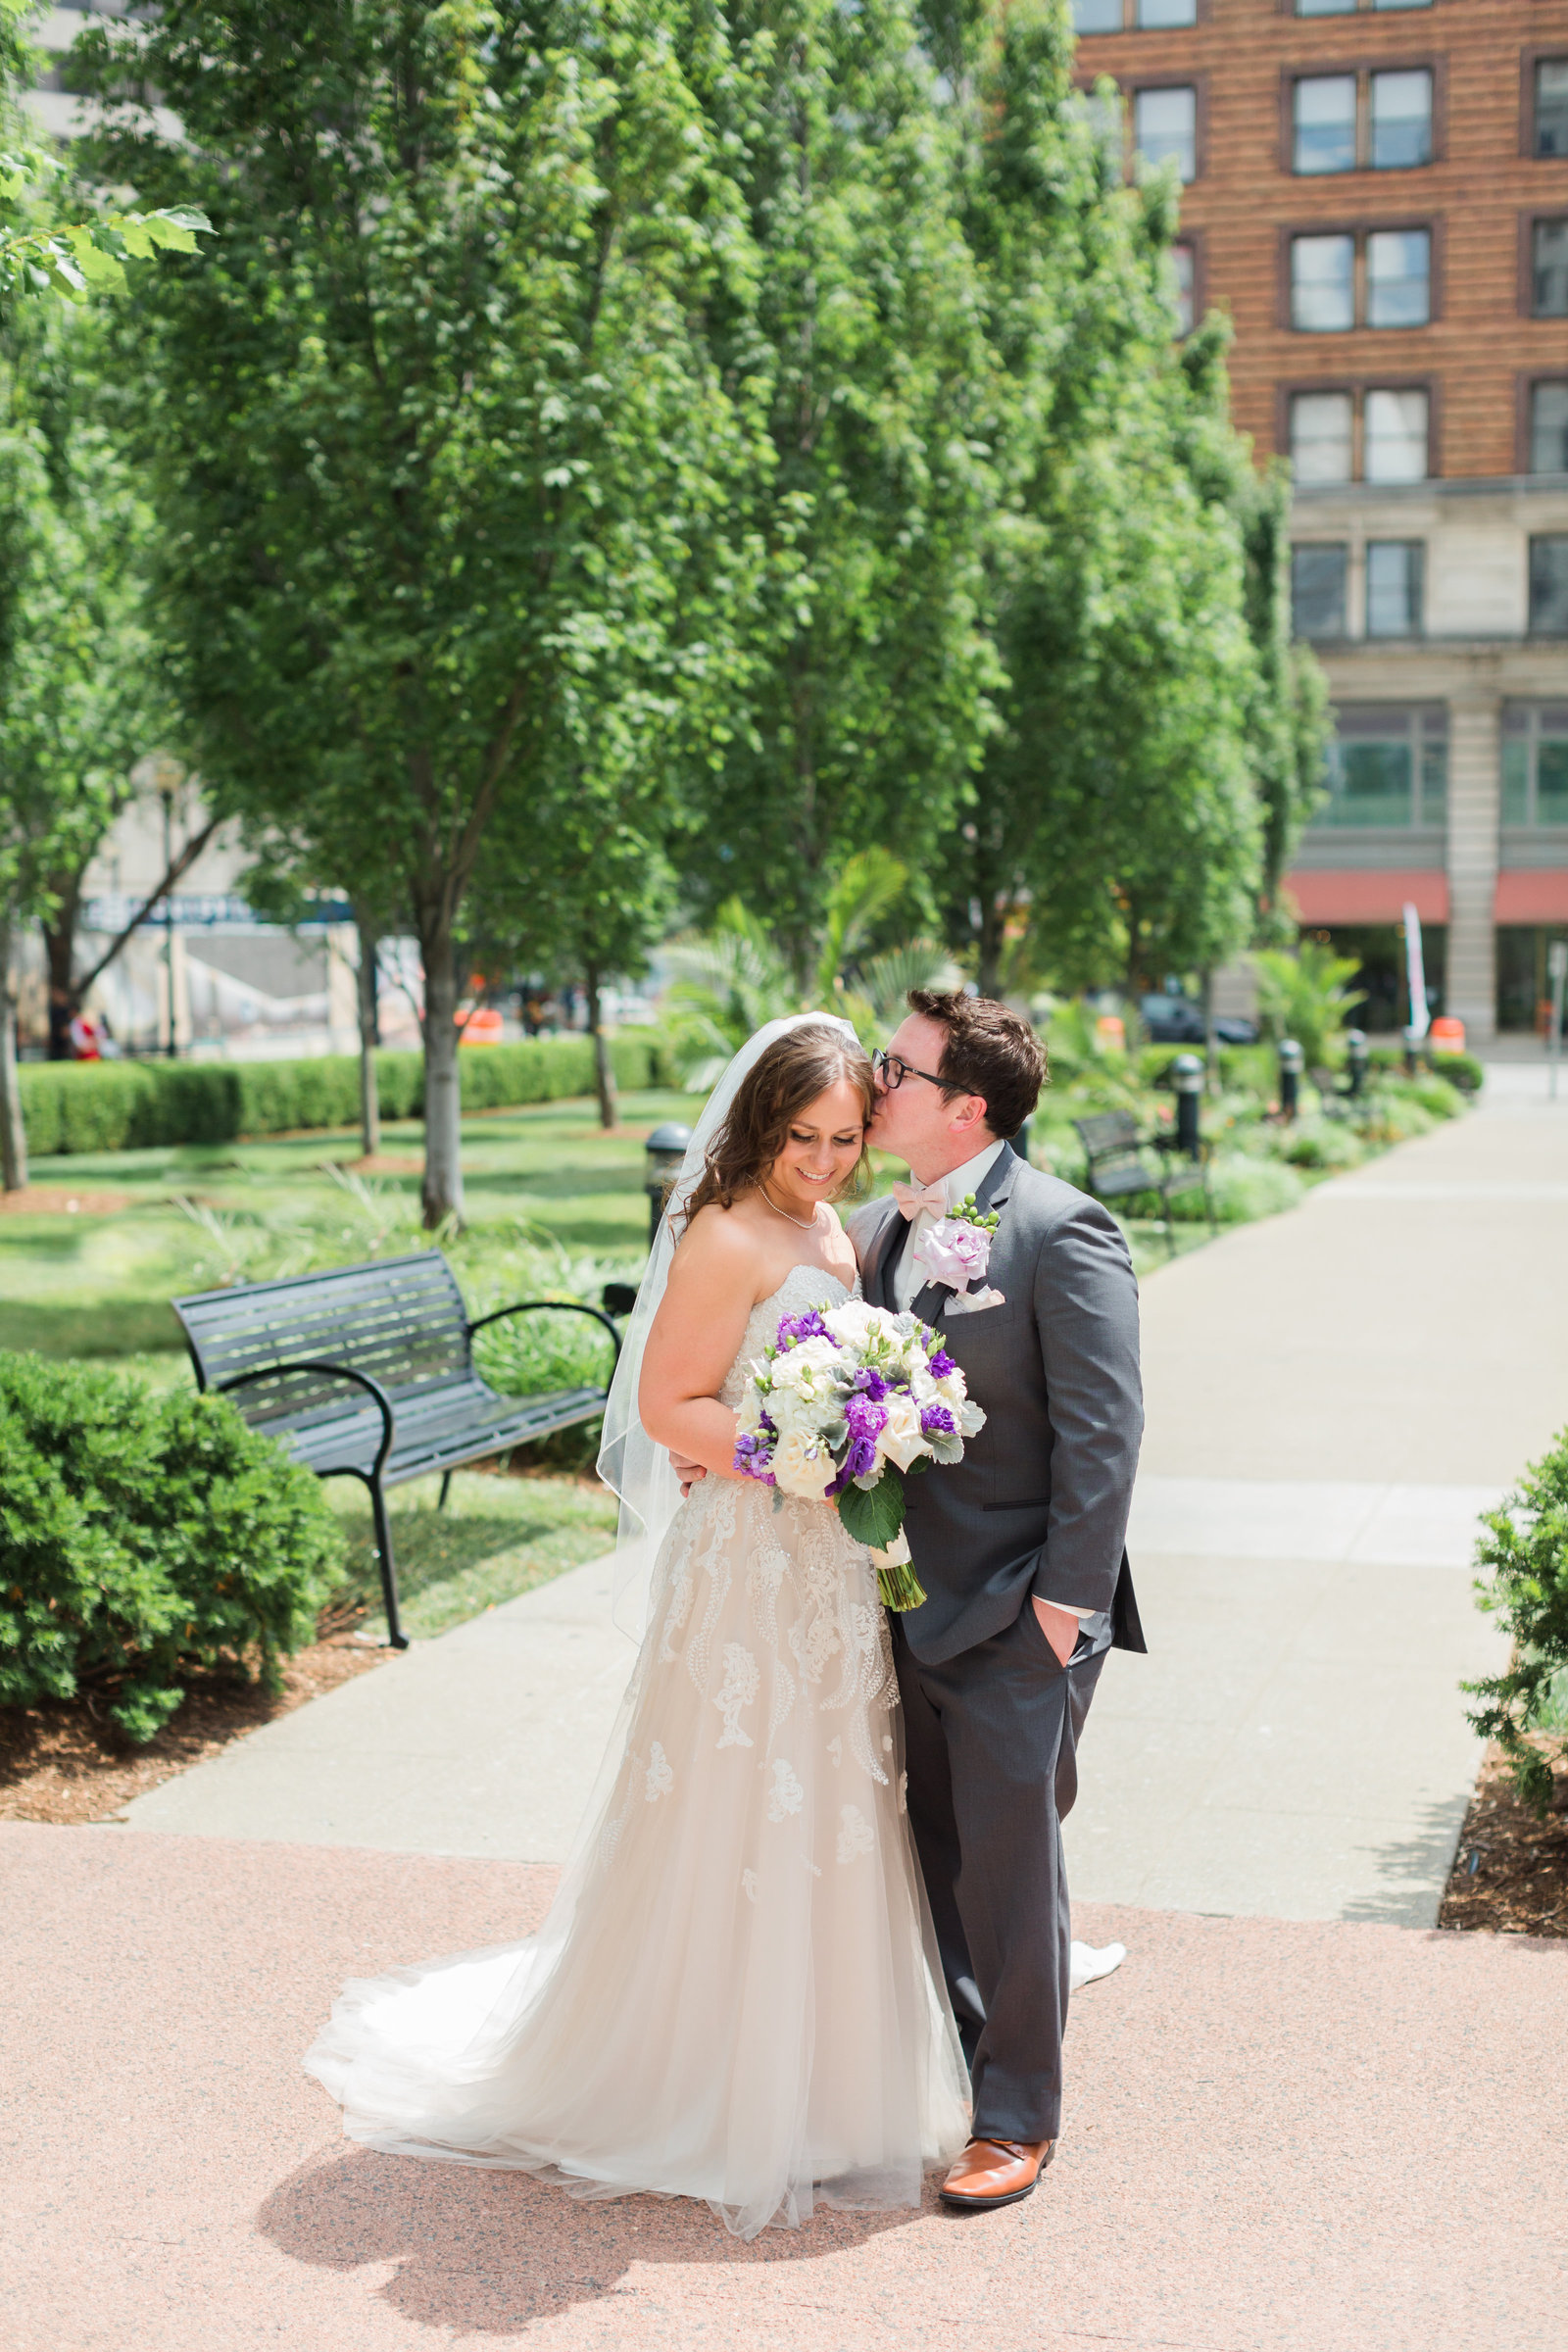 Jeff and Stephanie Married-Samantha Laffoon Photography-56